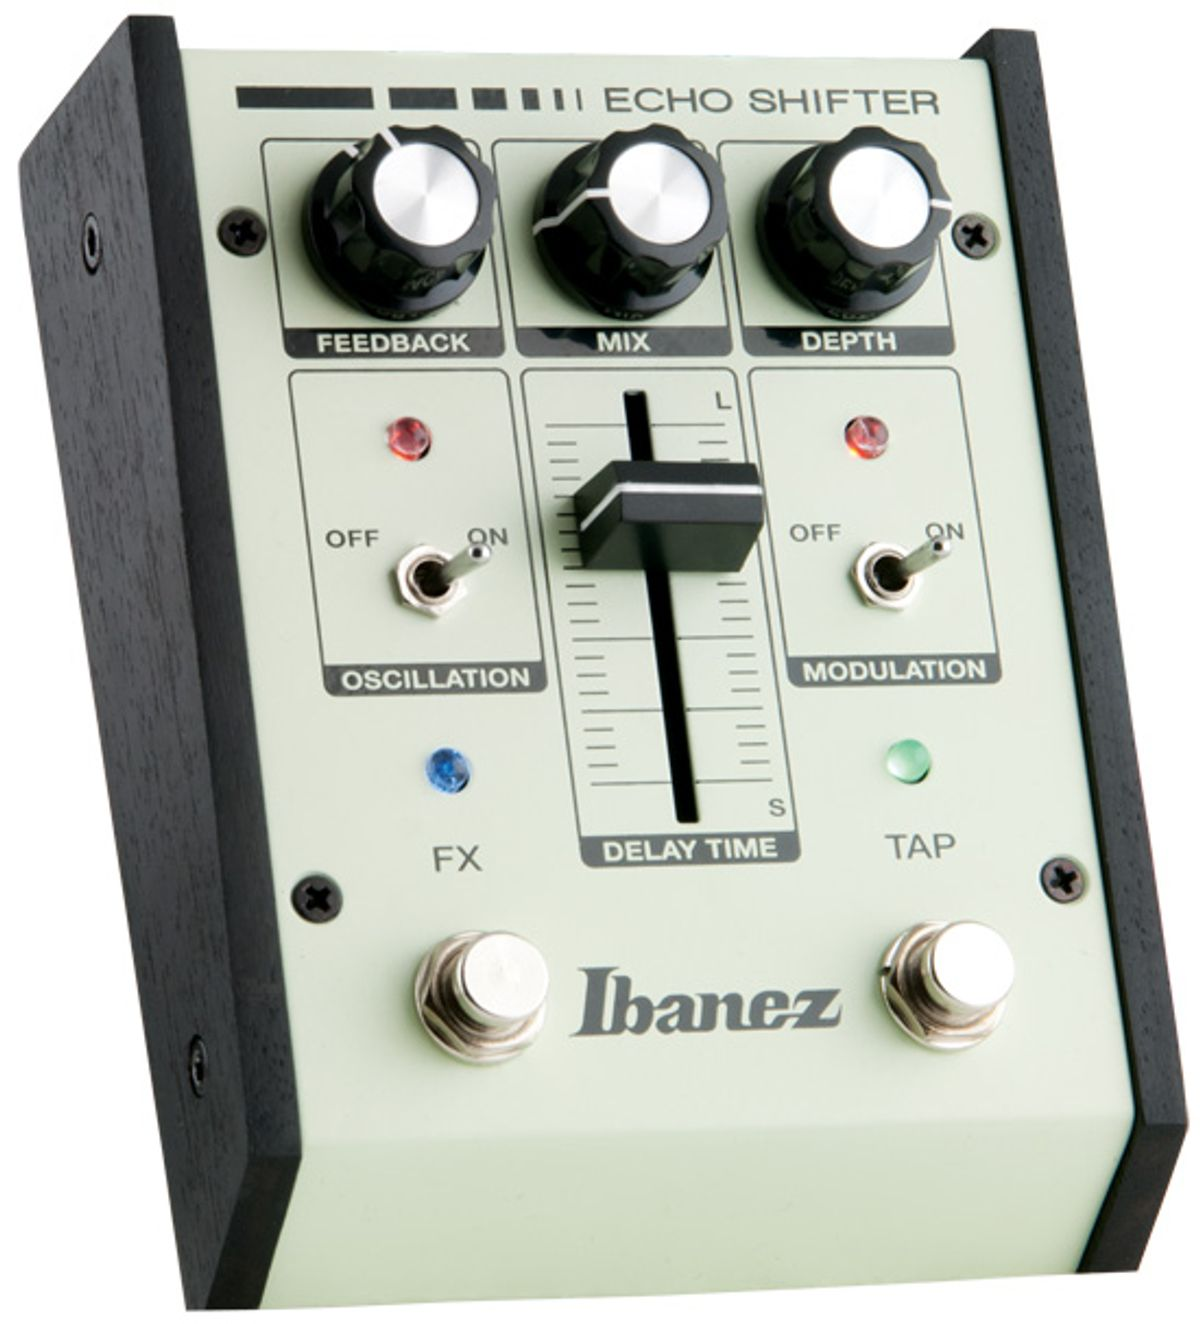 Ibanez Echo Shifter Pedal Review